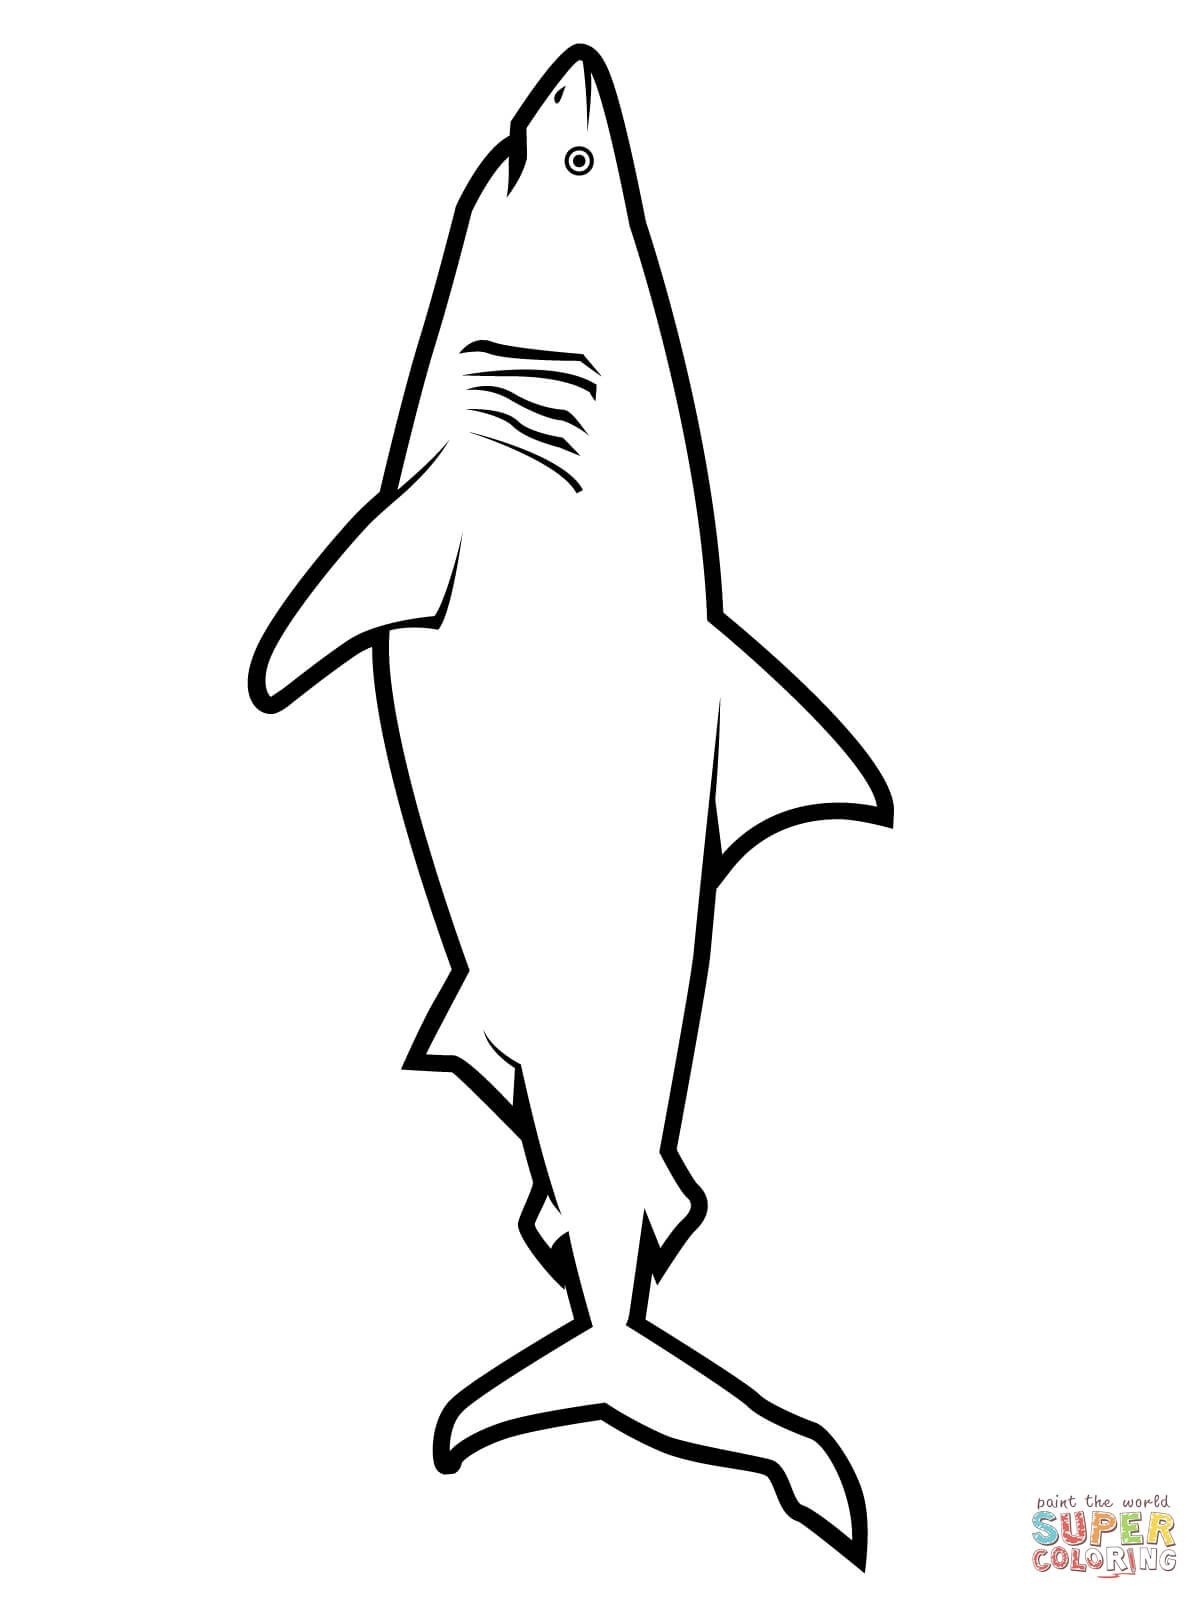 great white shark pictures to print great white shark endangered animal coloring page woo to shark pictures print great white